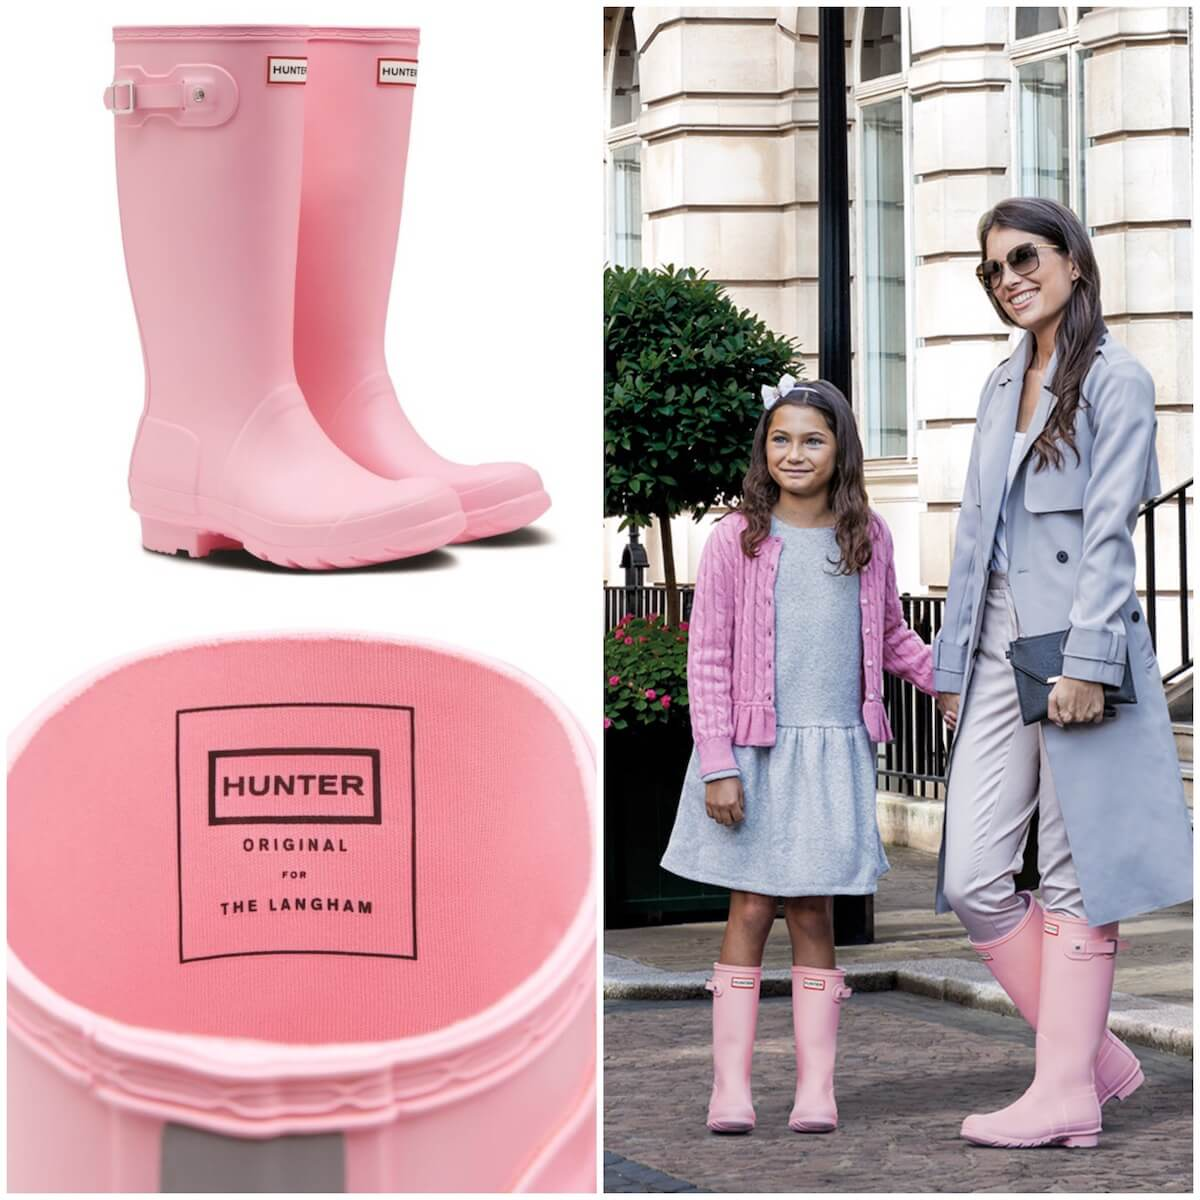 Langham Pink Hunter Boots Launch at The